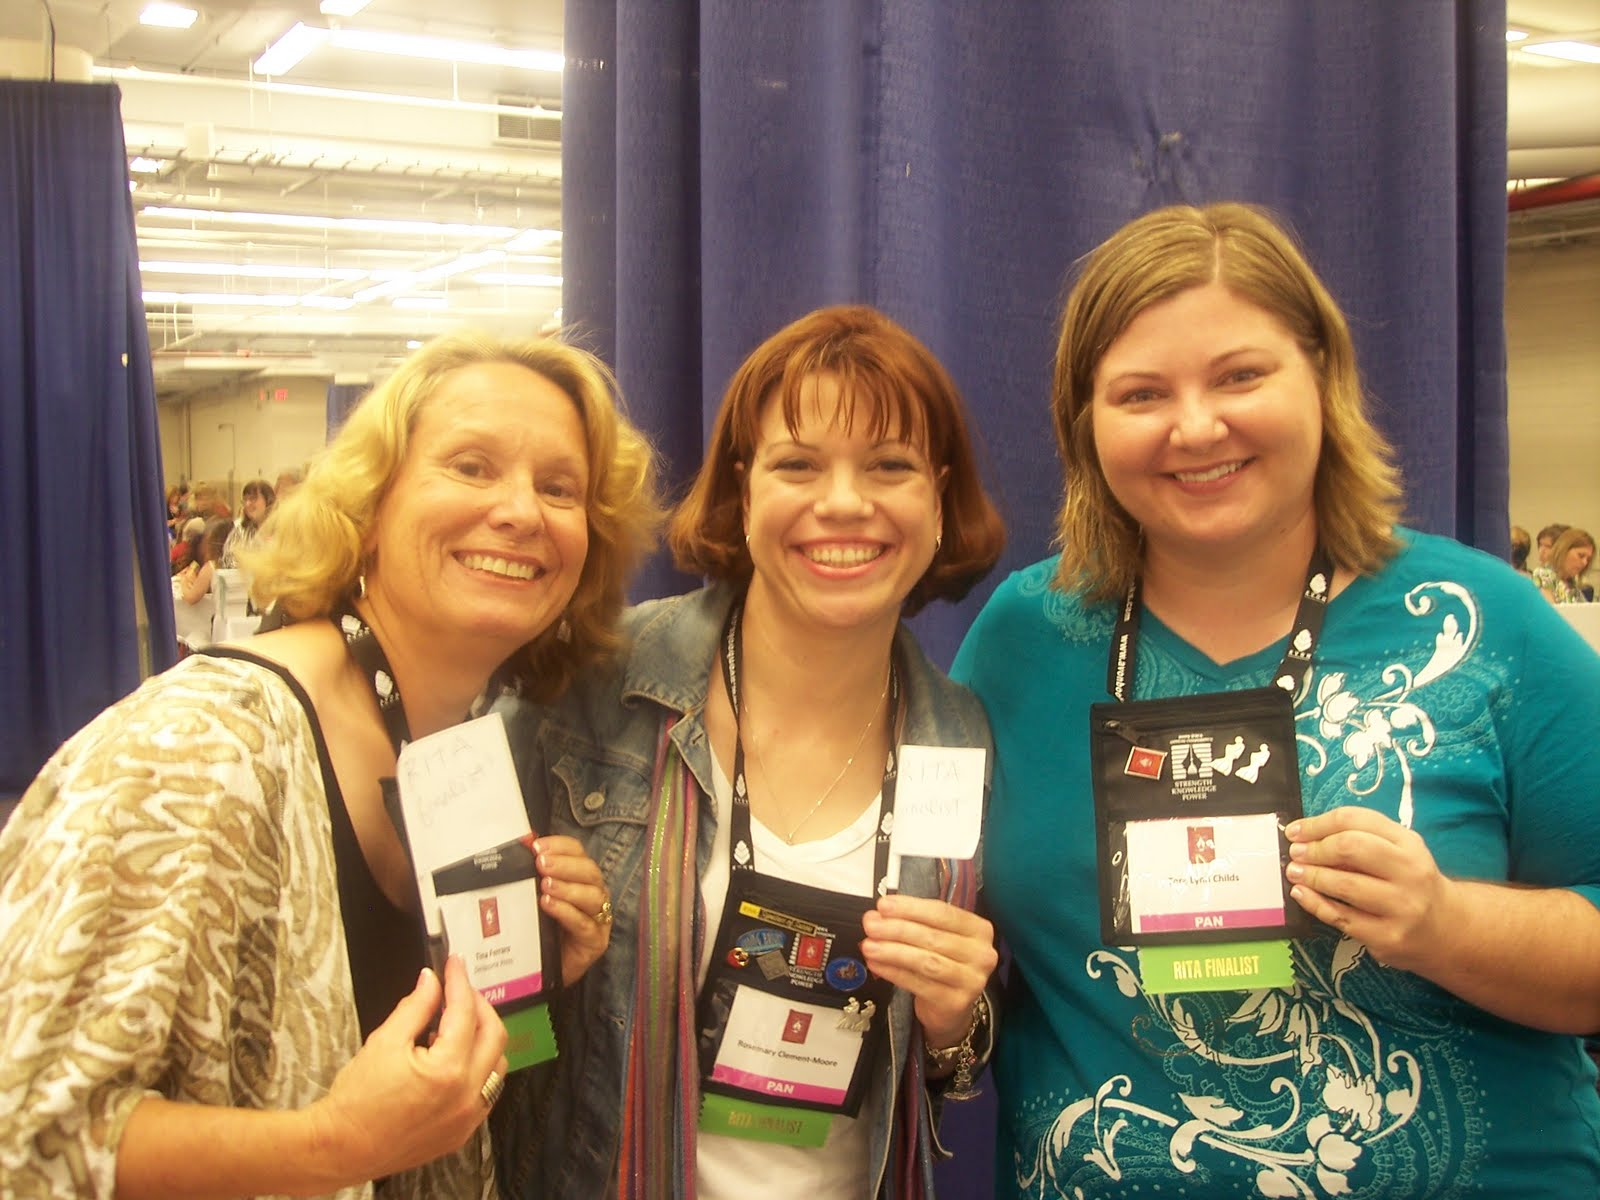 Rita finalists for Best Young Adult Romance 2009, me, Rosemary Clement-Moore ...